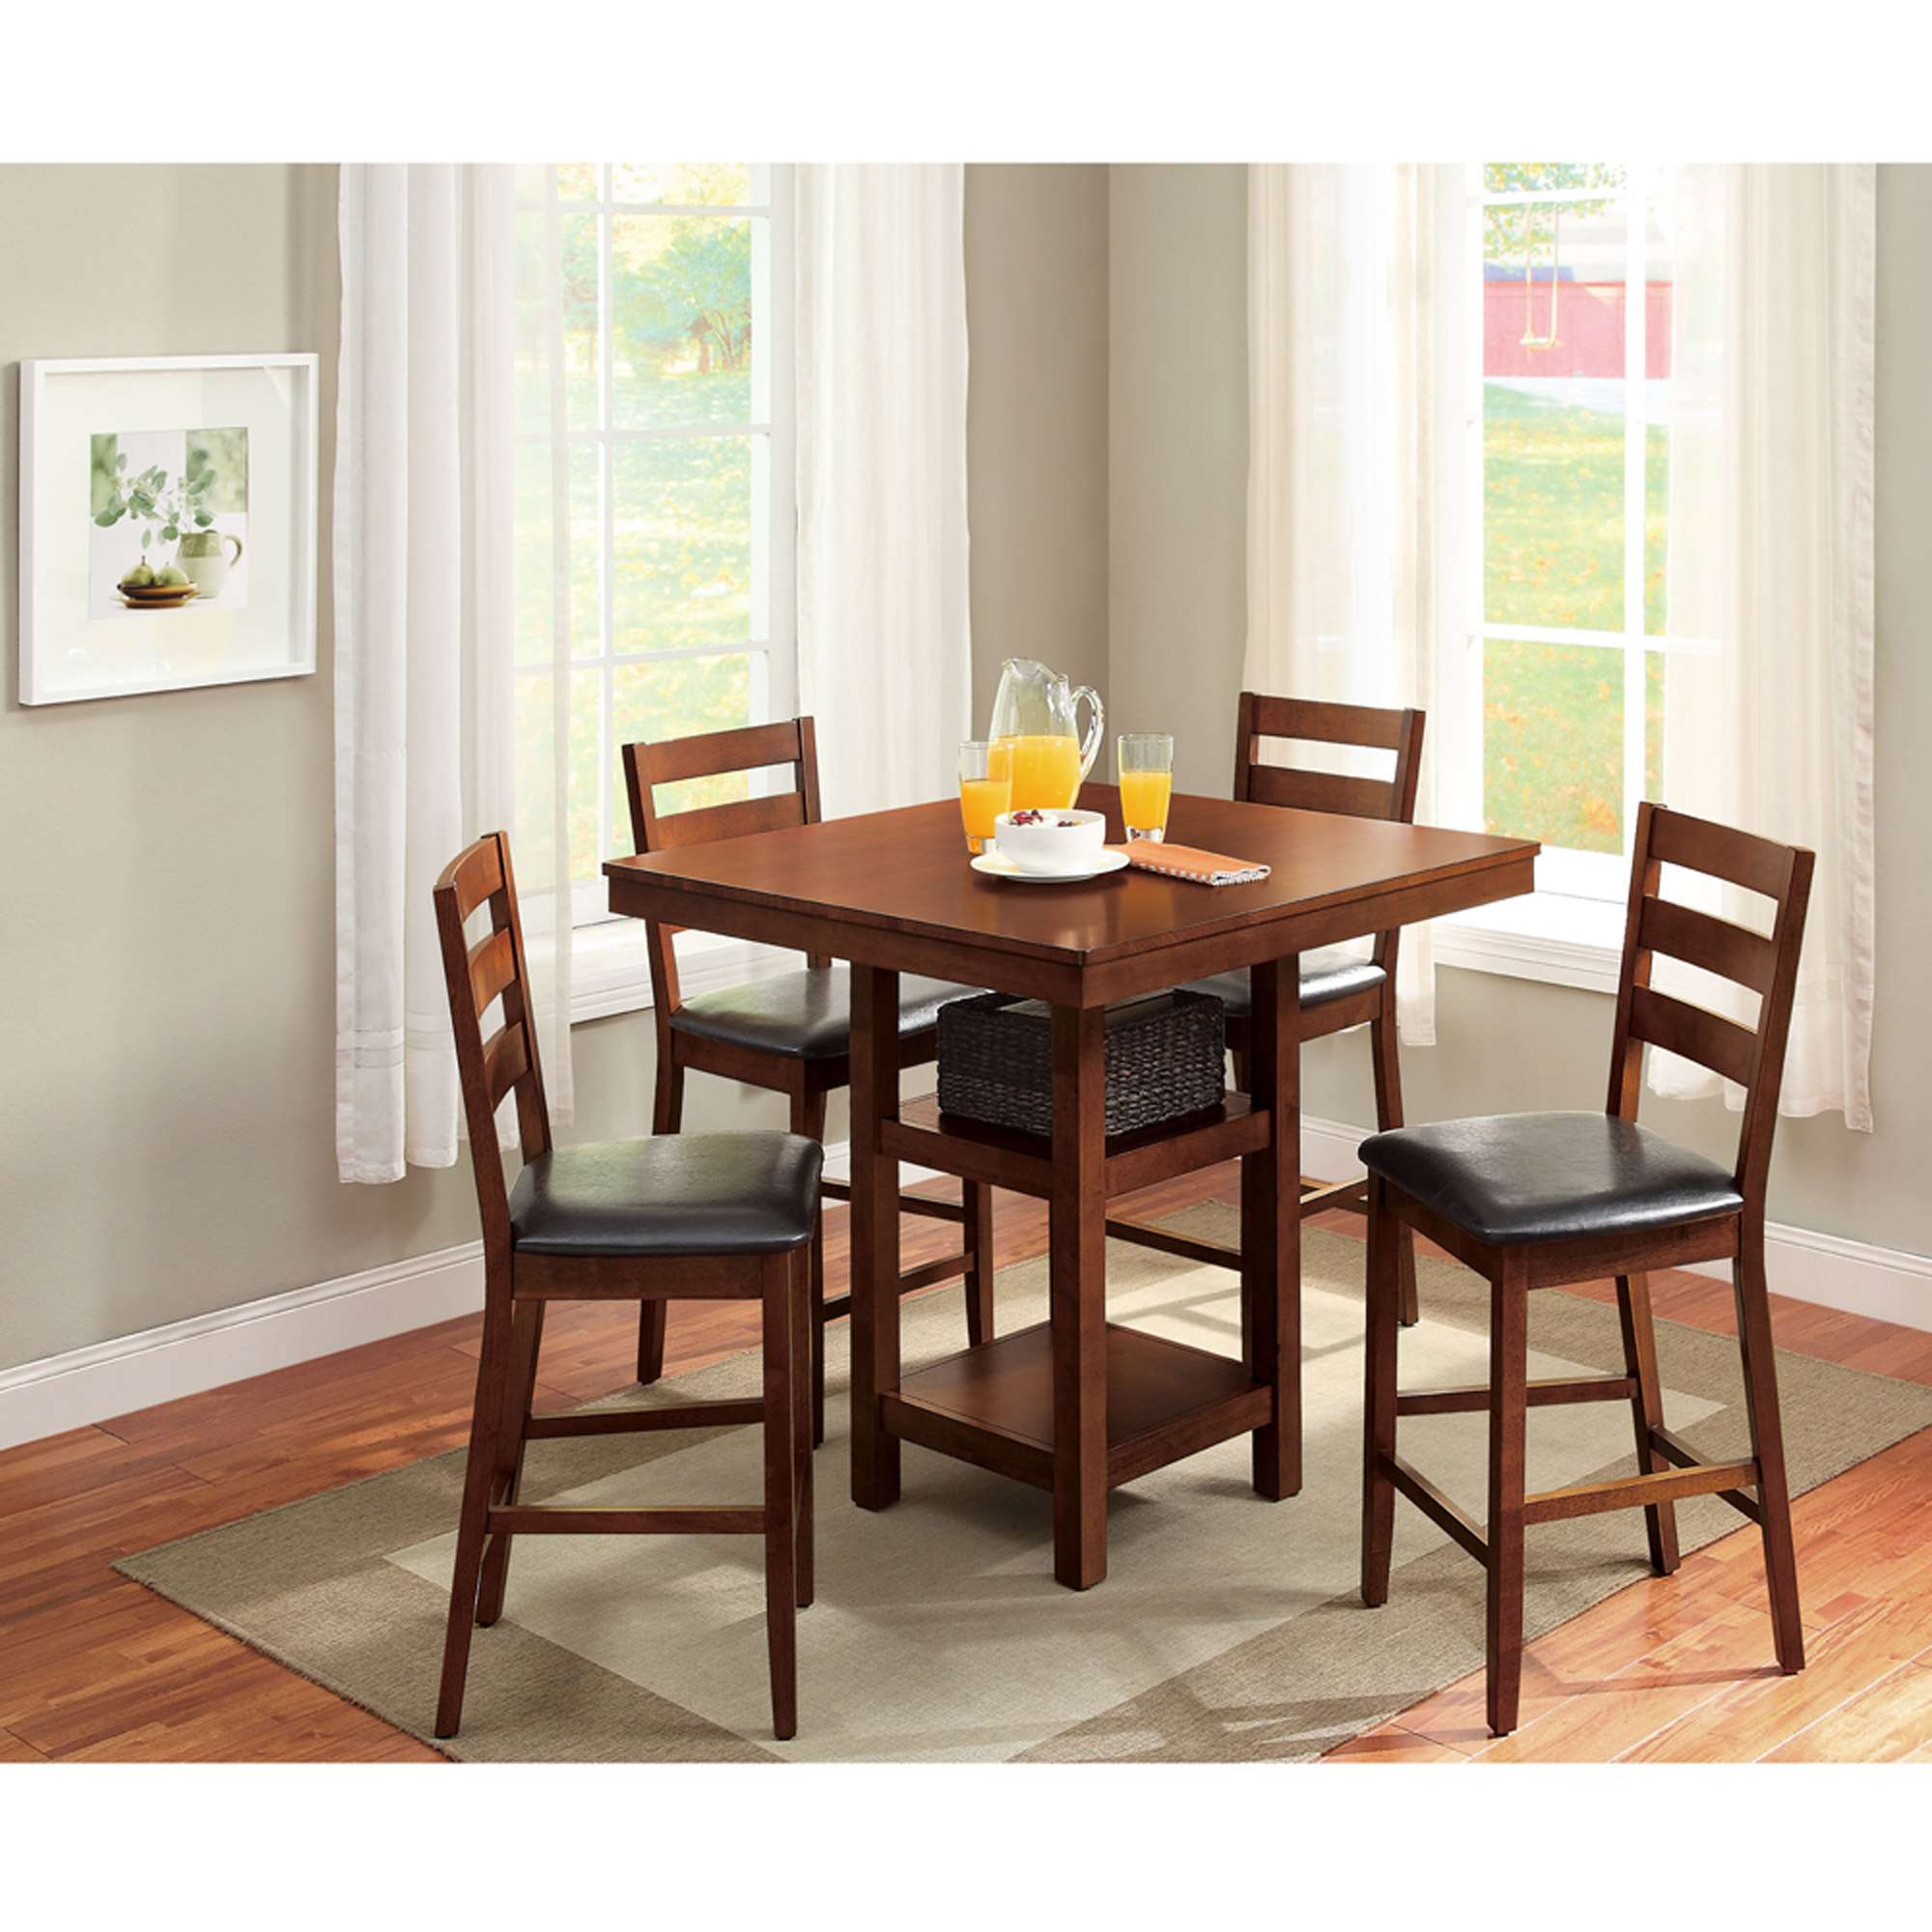 cheap dining room tables Better Homes & Gardens Dalton Park 5 Piece Counter Height Dining  cheap dining room tables